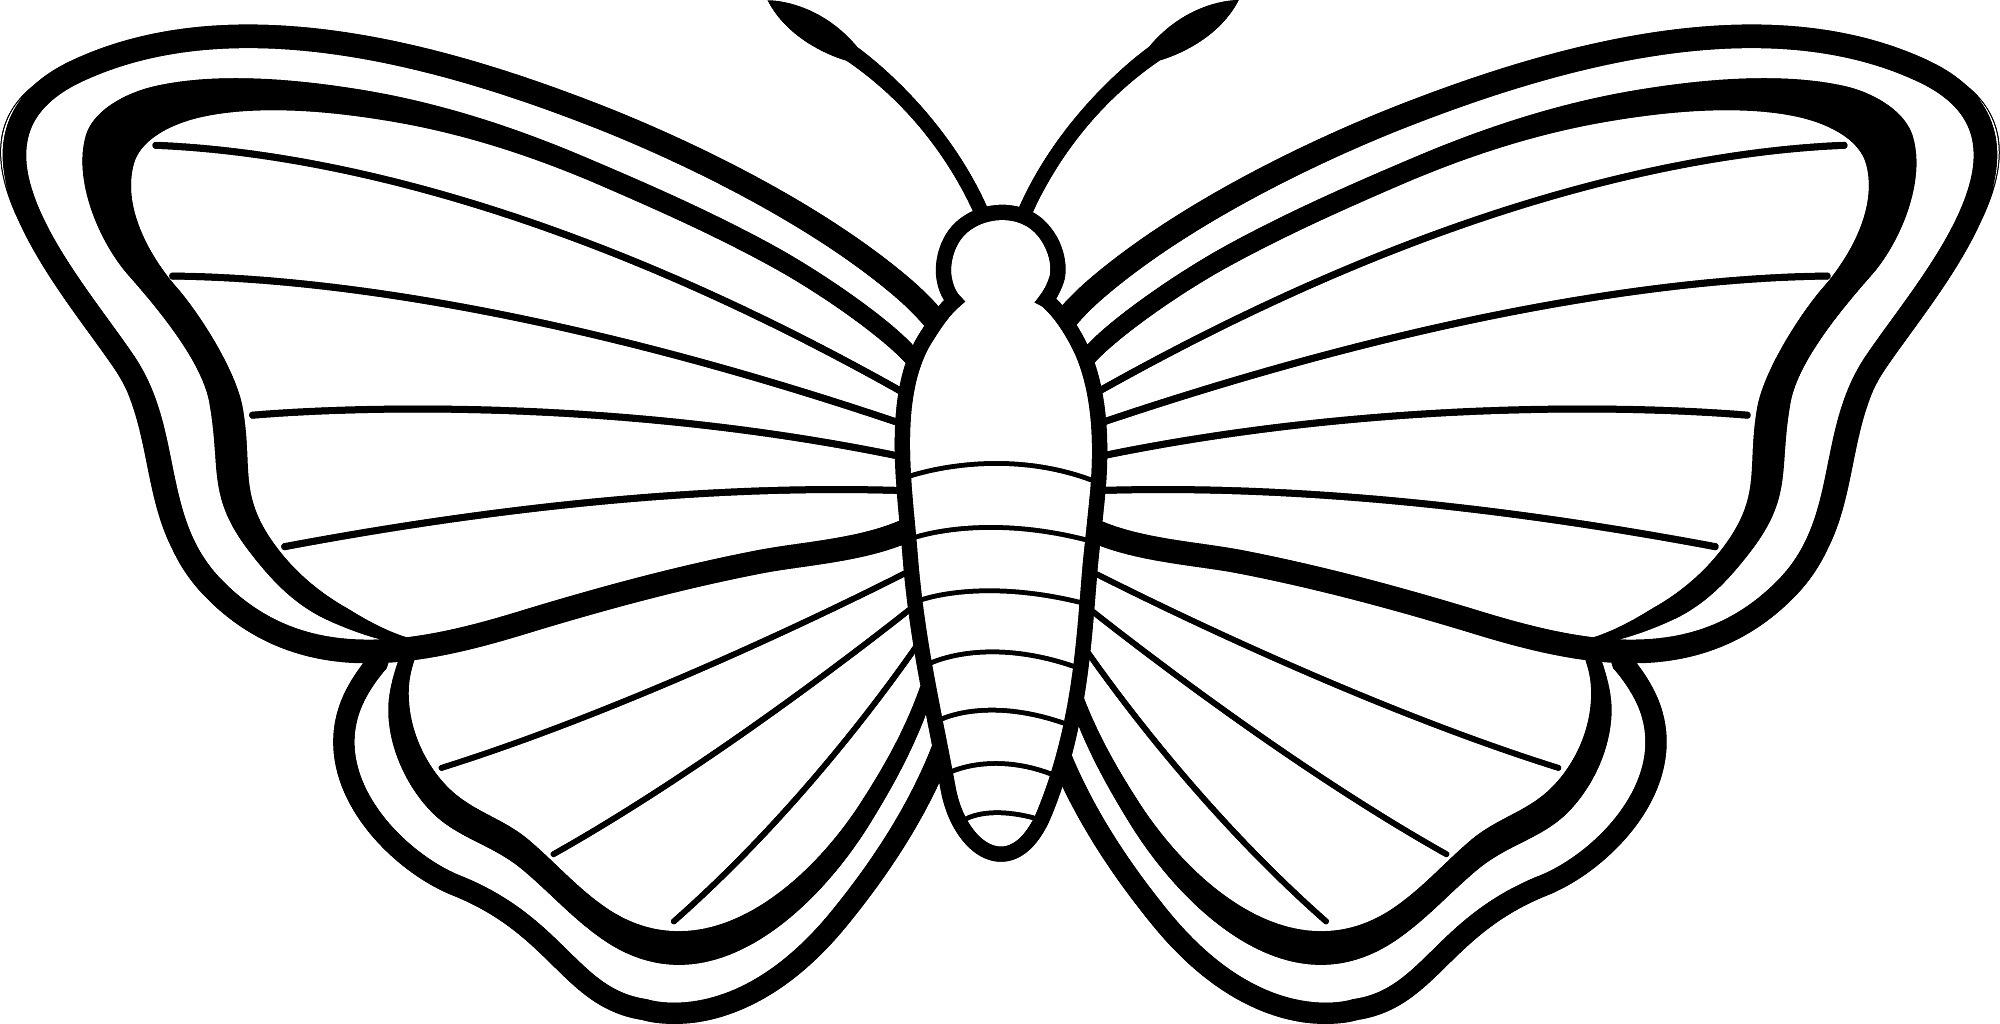 butterflies to color free printable butterfly coloring pages for kids to color butterflies